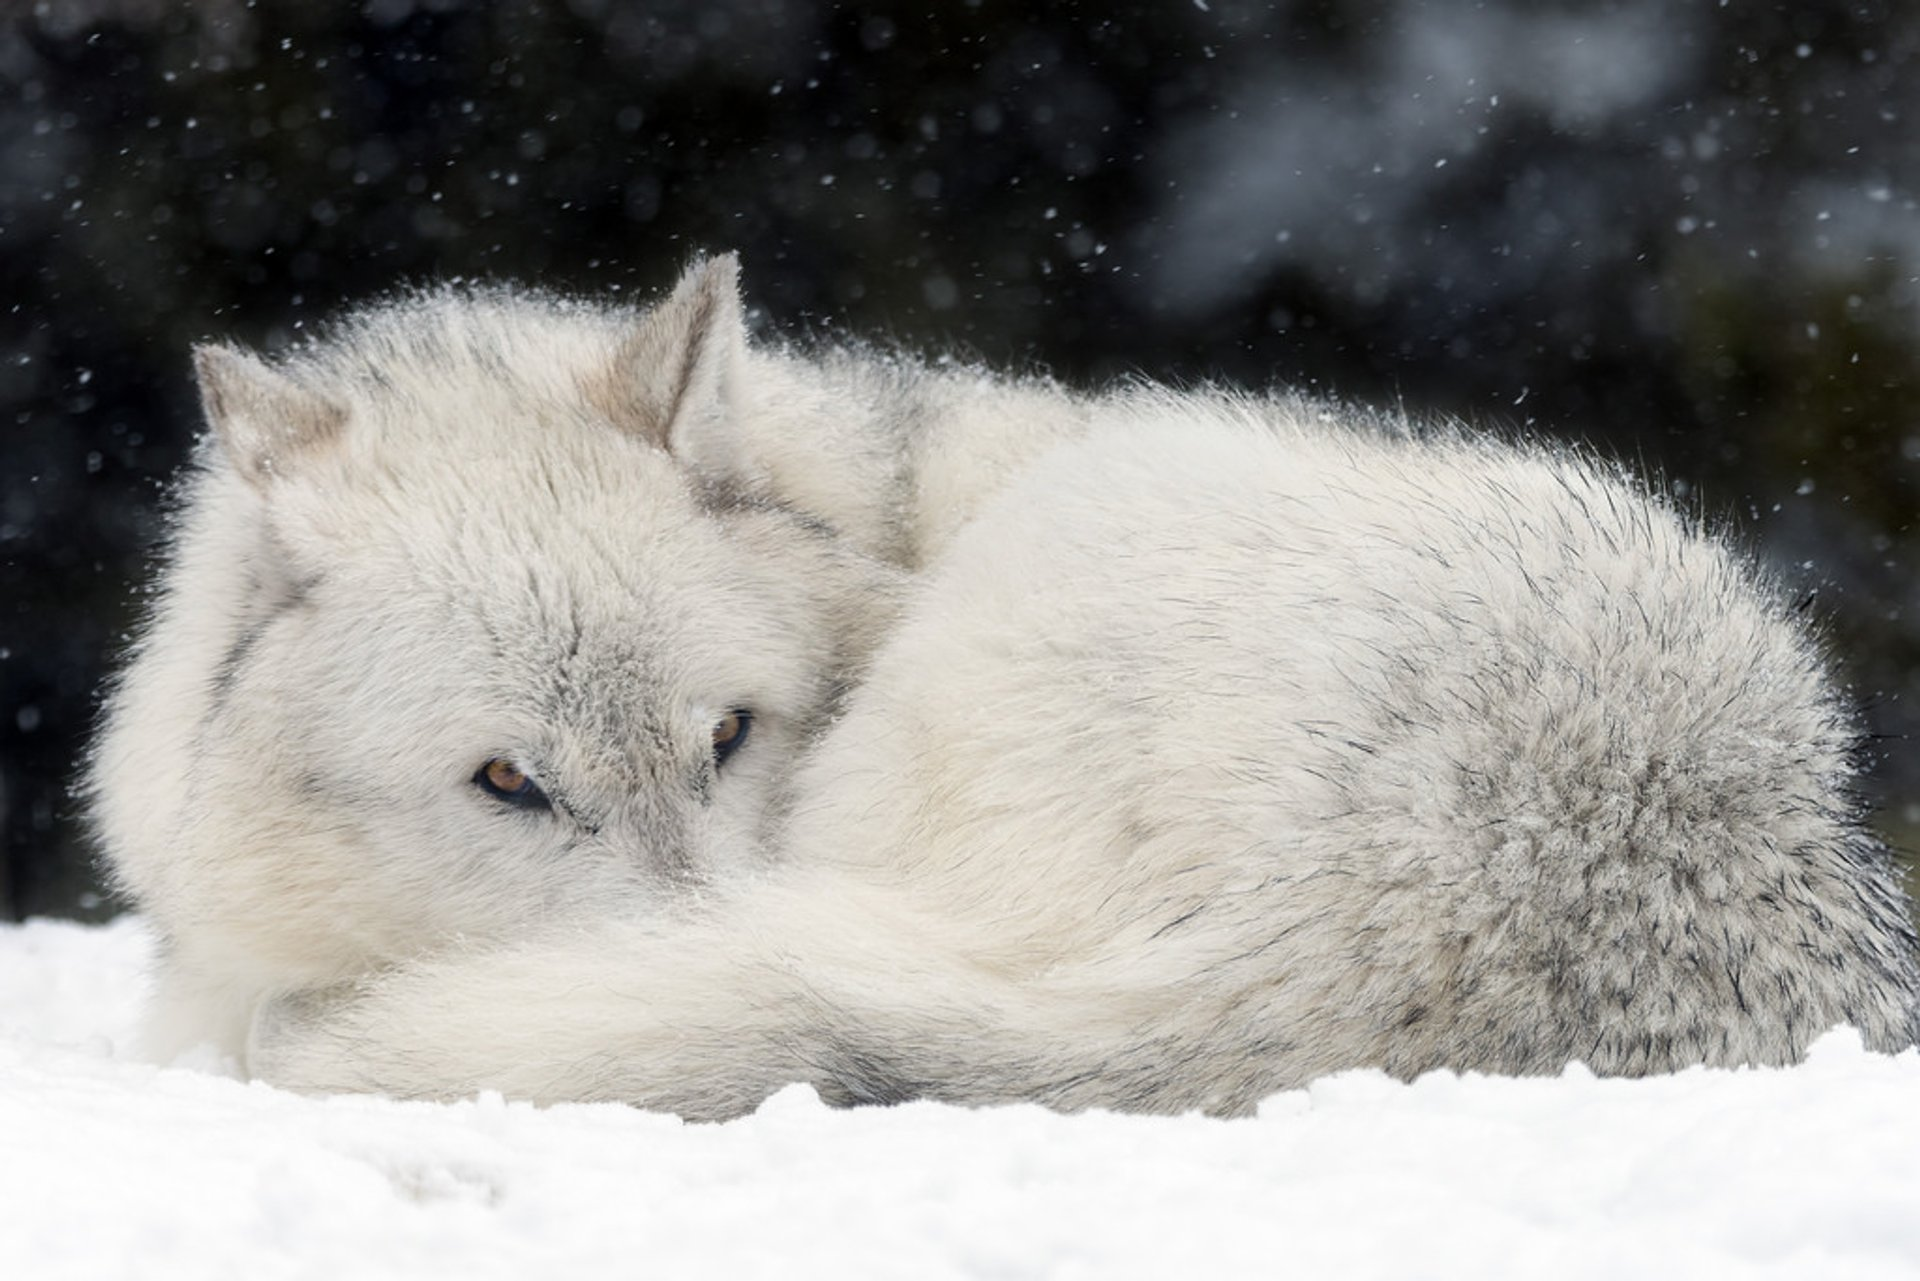 Wolves in Yellowstone National Park 2020 - Best Time